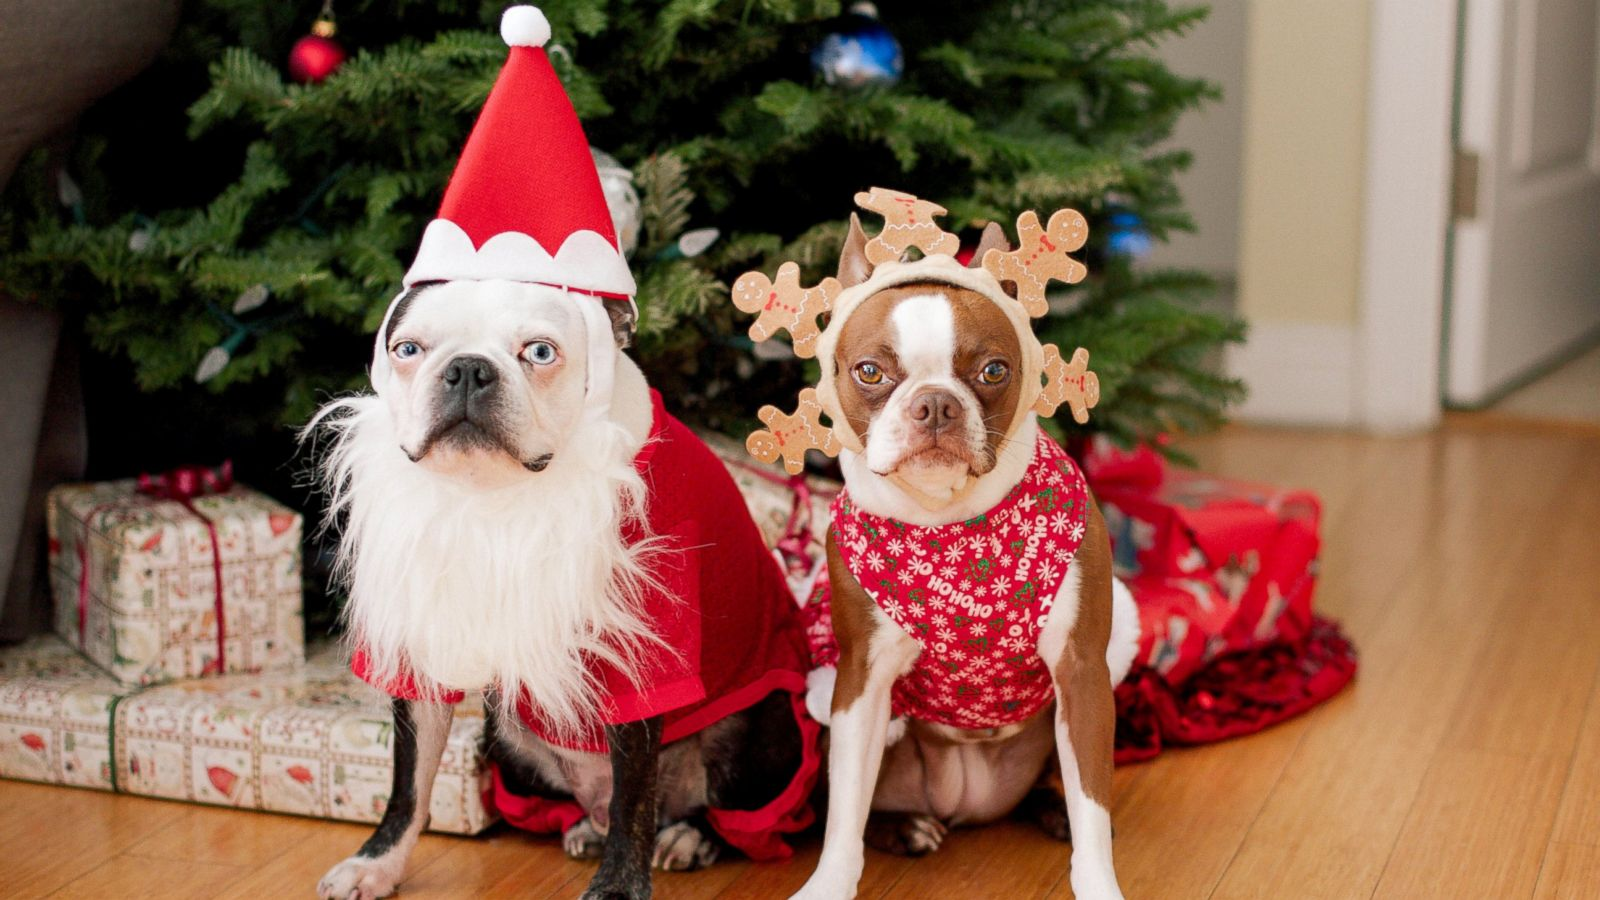 Christmas Isn't Just for People, It's for Pets, Too - ABC News